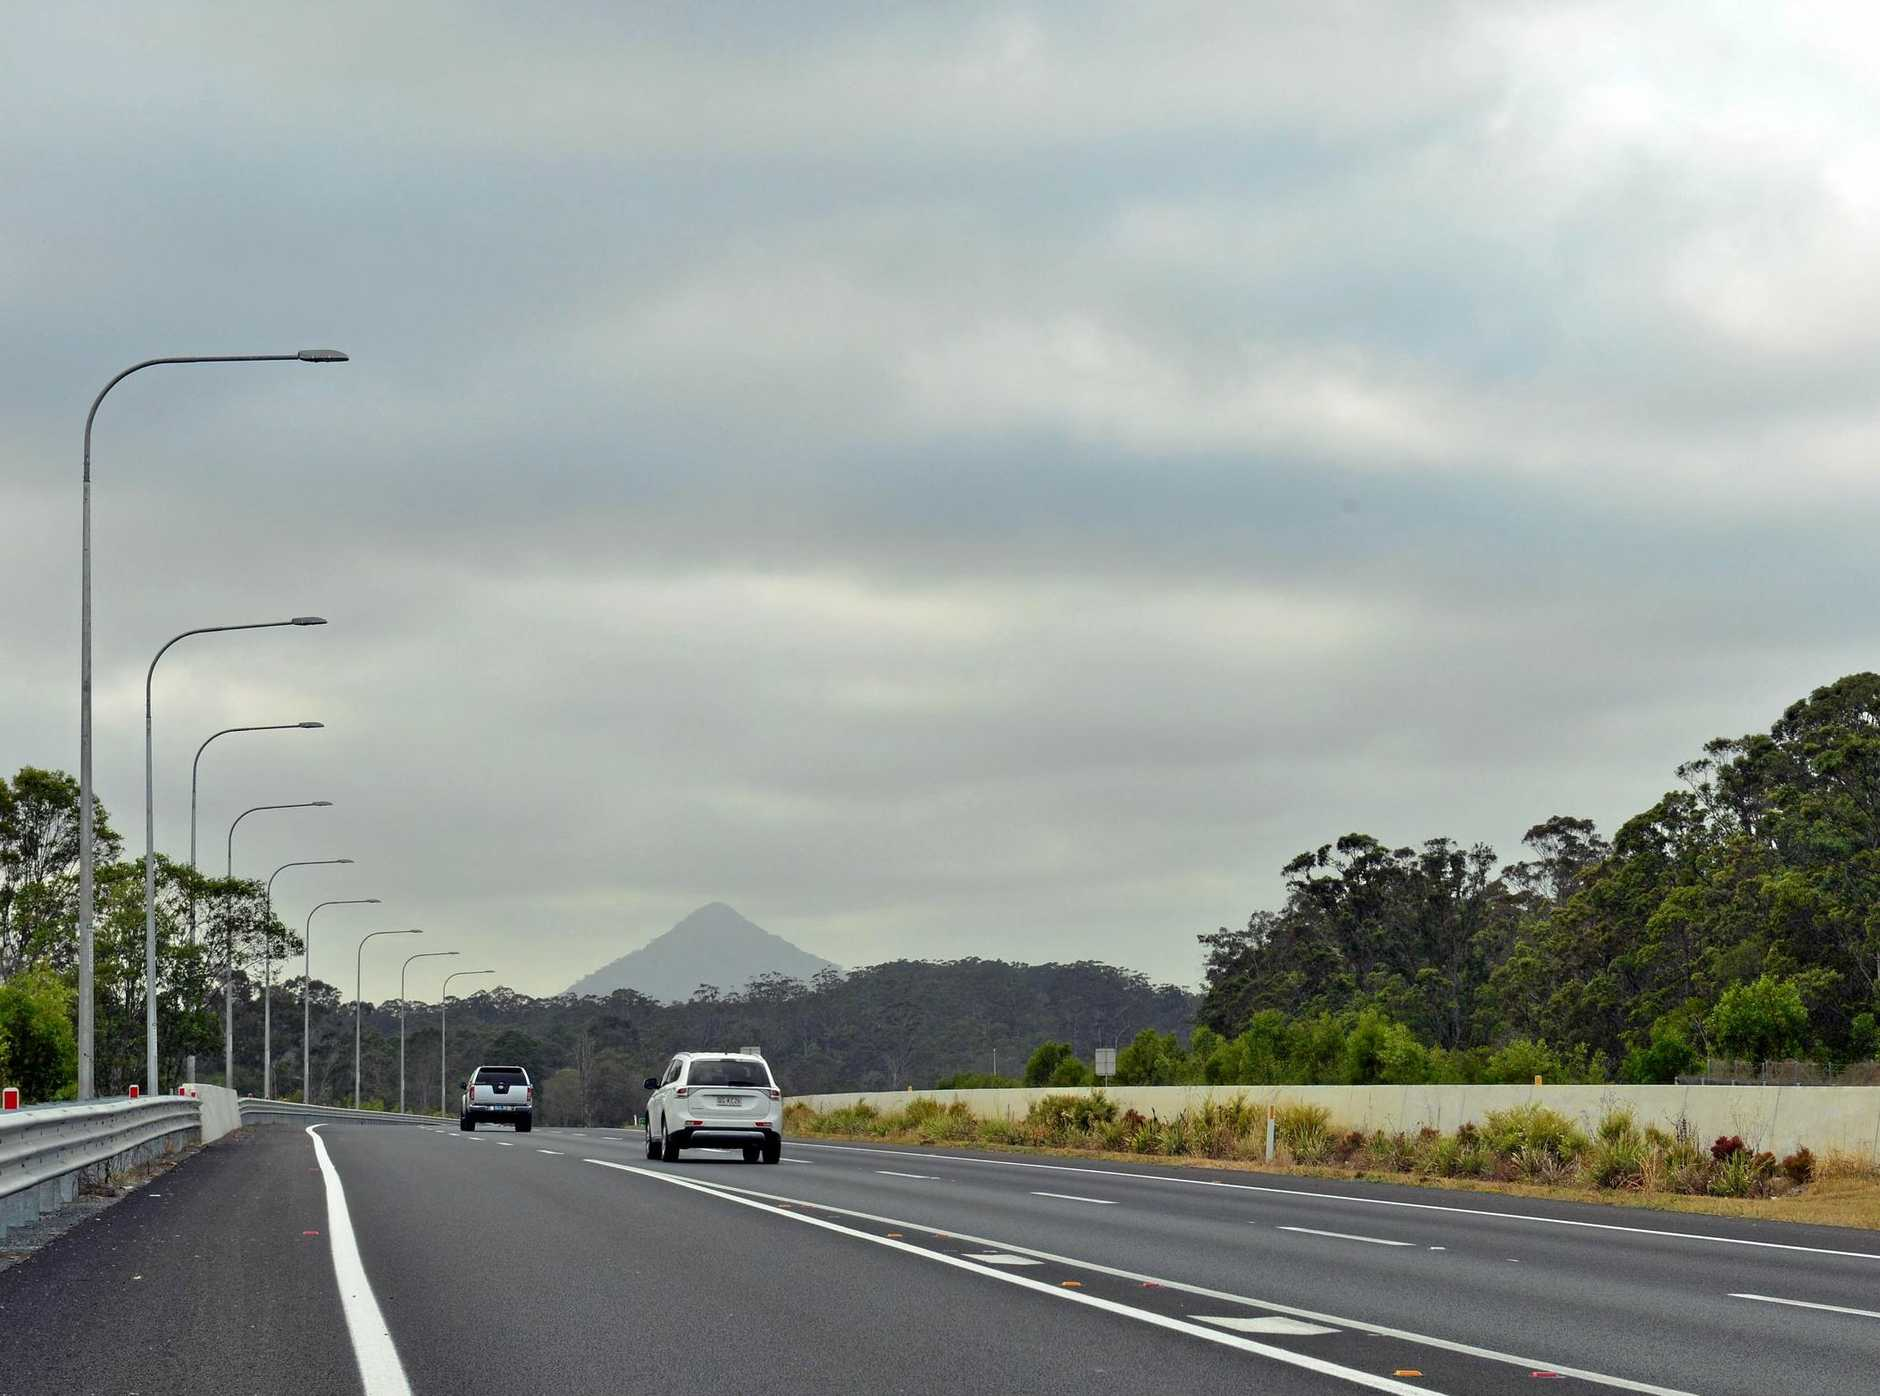 A tourism forum has welcomed the announcement of more funding for the Bruce Highway.